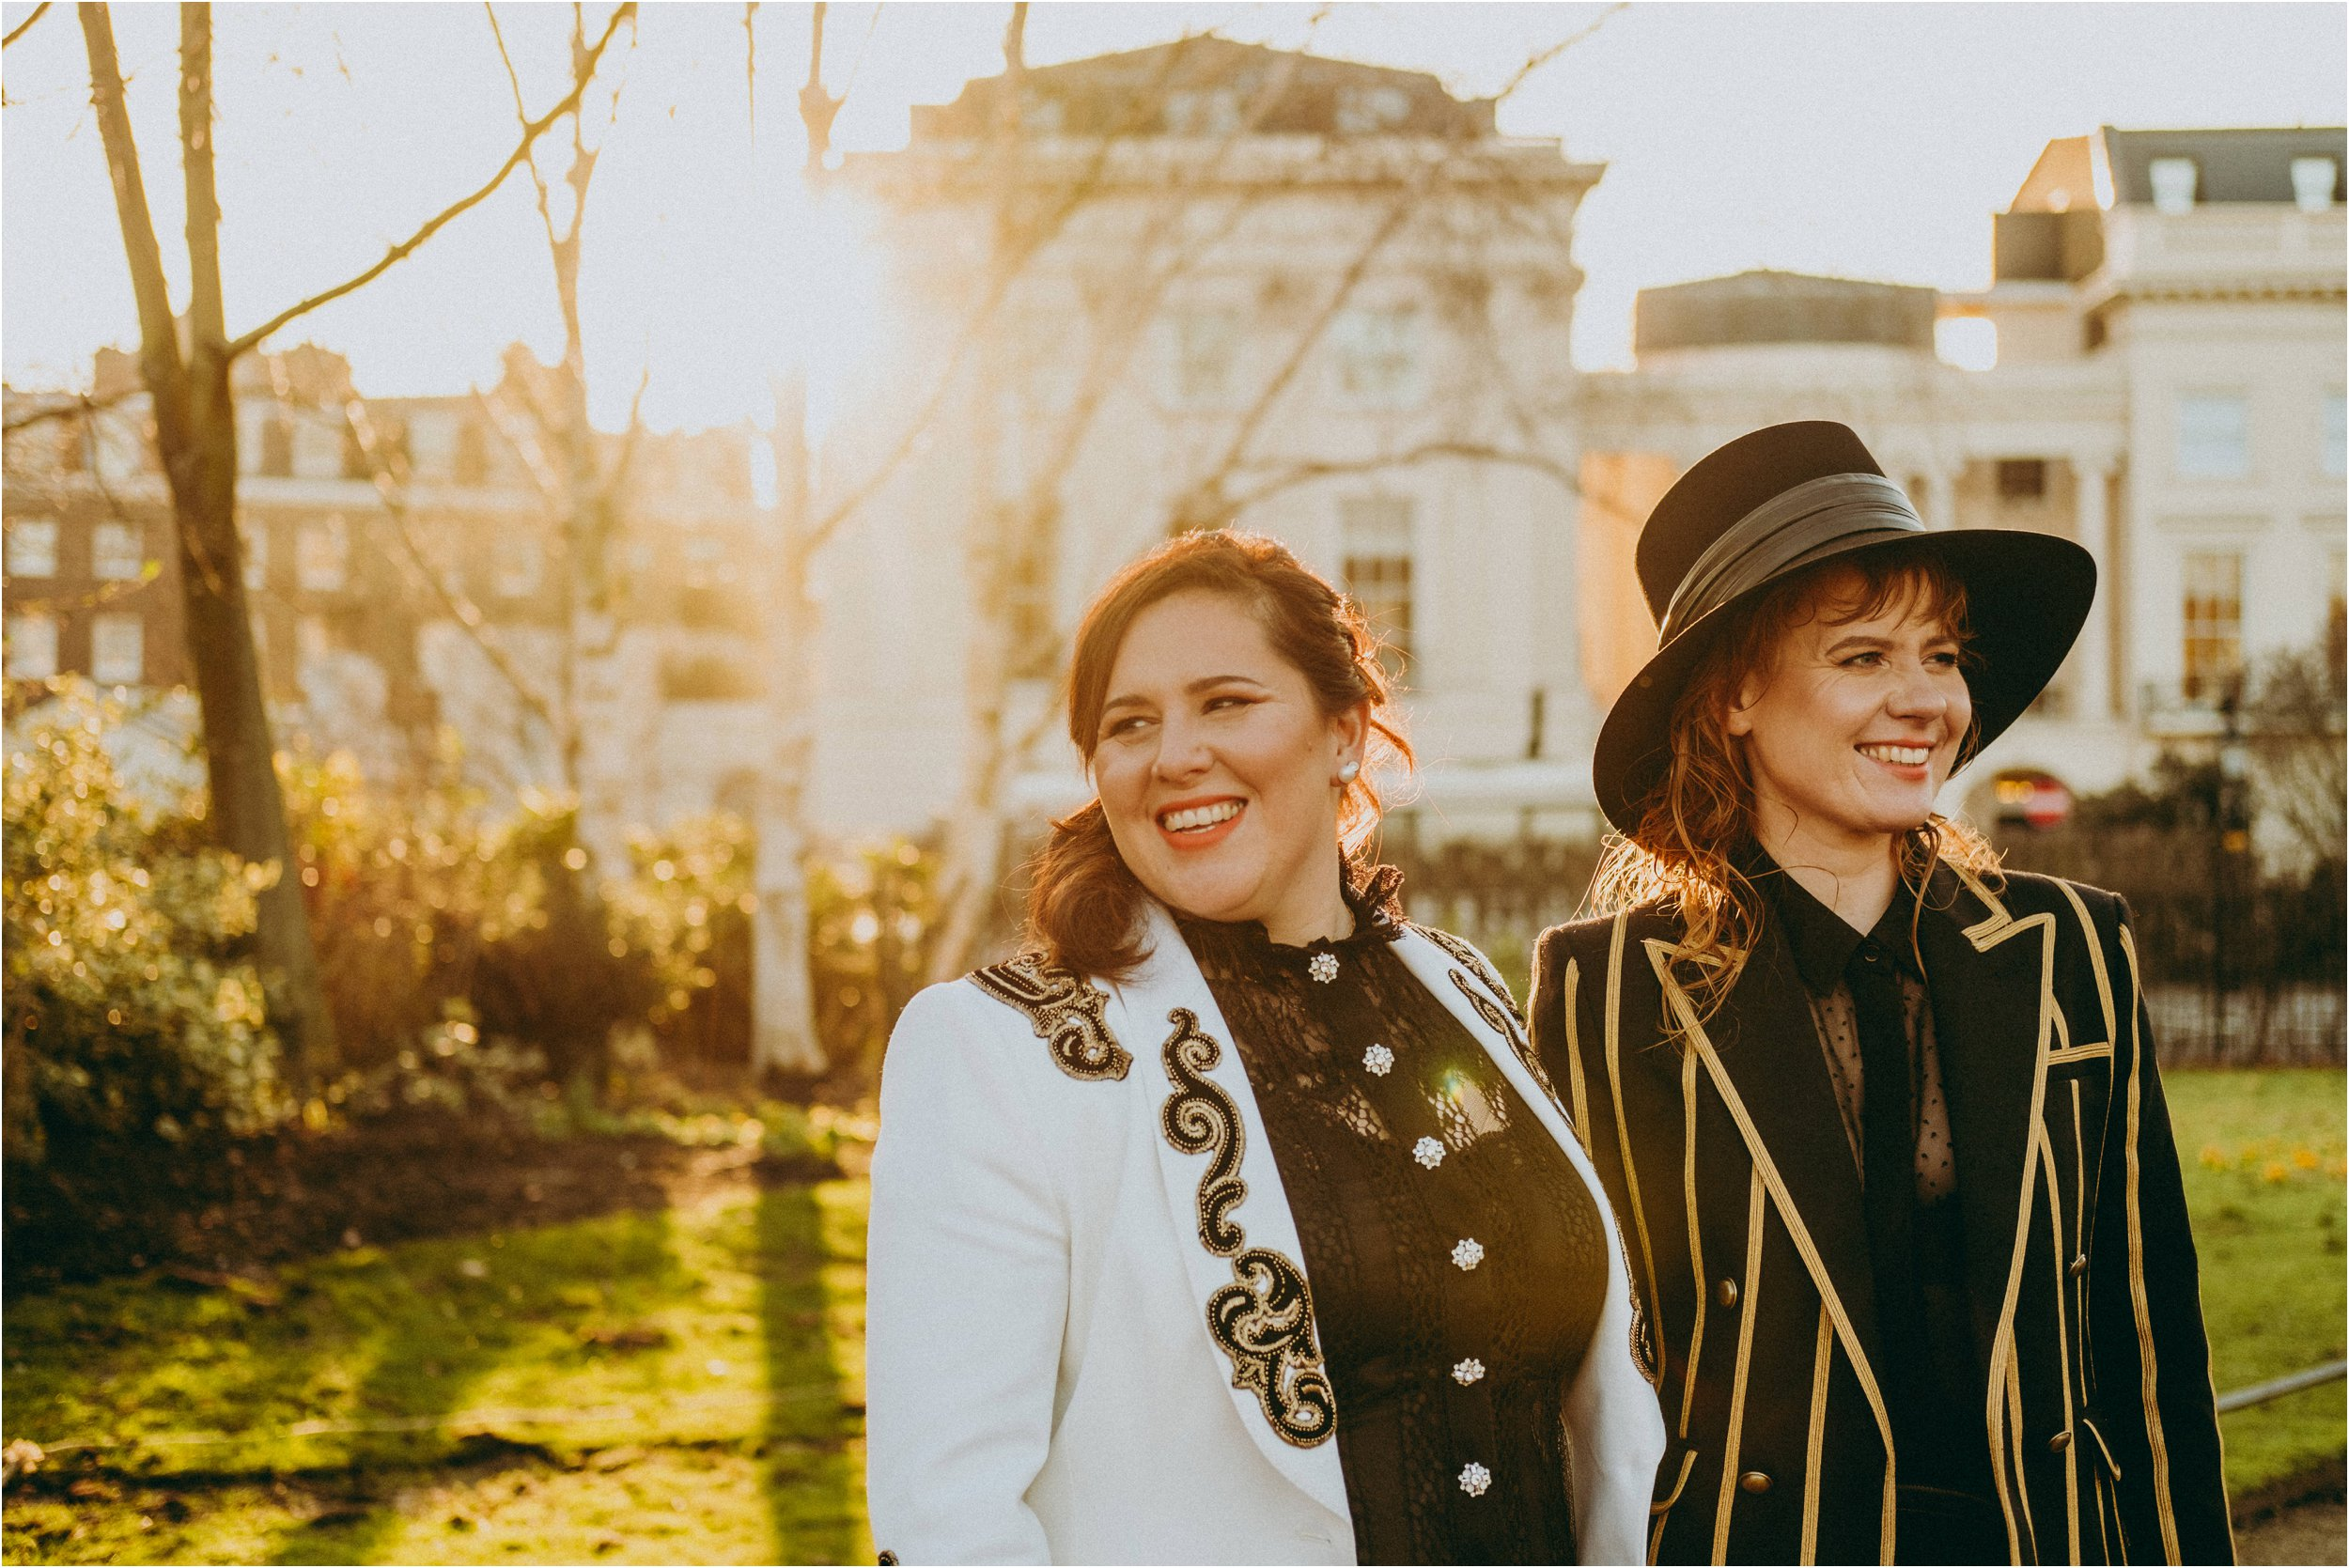 London elopement lesbian wedding_0103.jpg